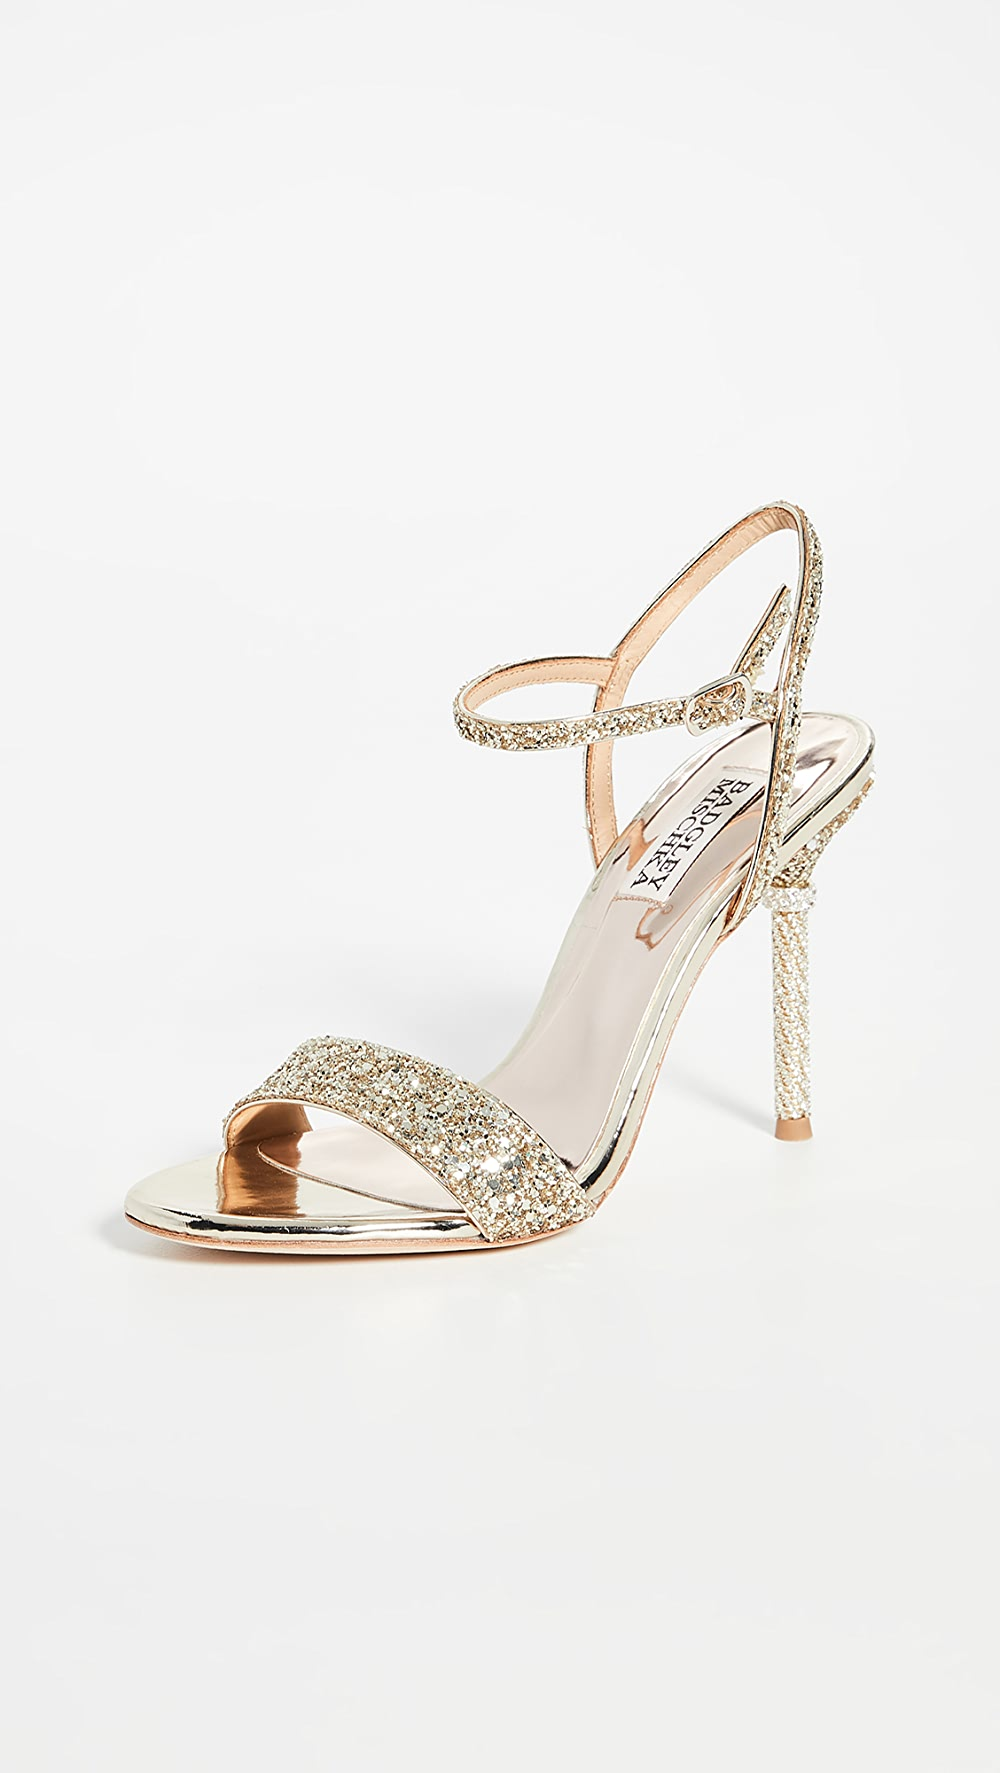 Search For Flights Badgley Mischka - Olympia Strappy Sandals Long Performance Life